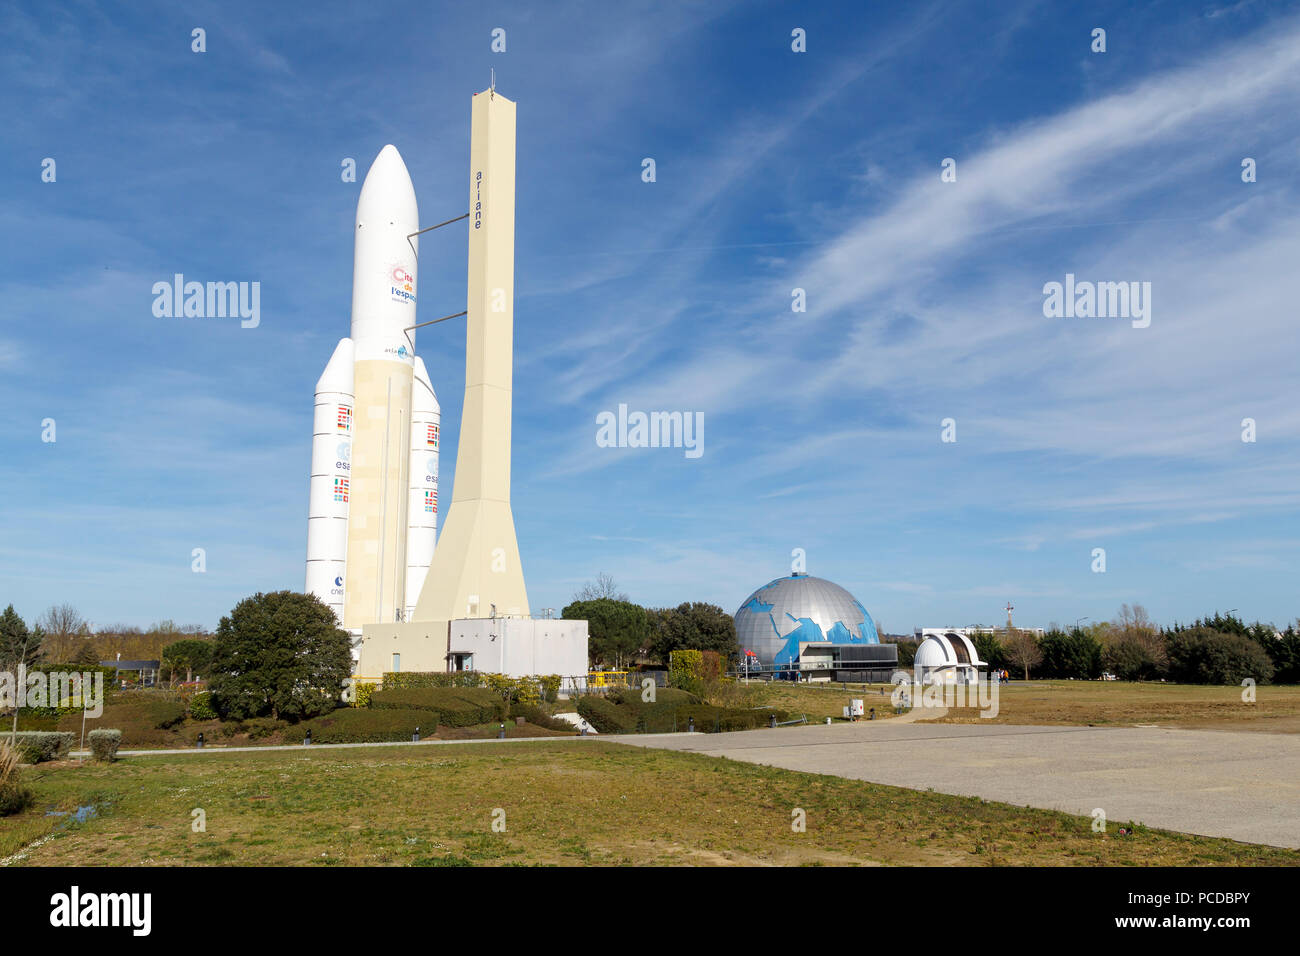 Space shuttle in the Space City of Toulouse, a theme park about aerospace industry - Stock Image